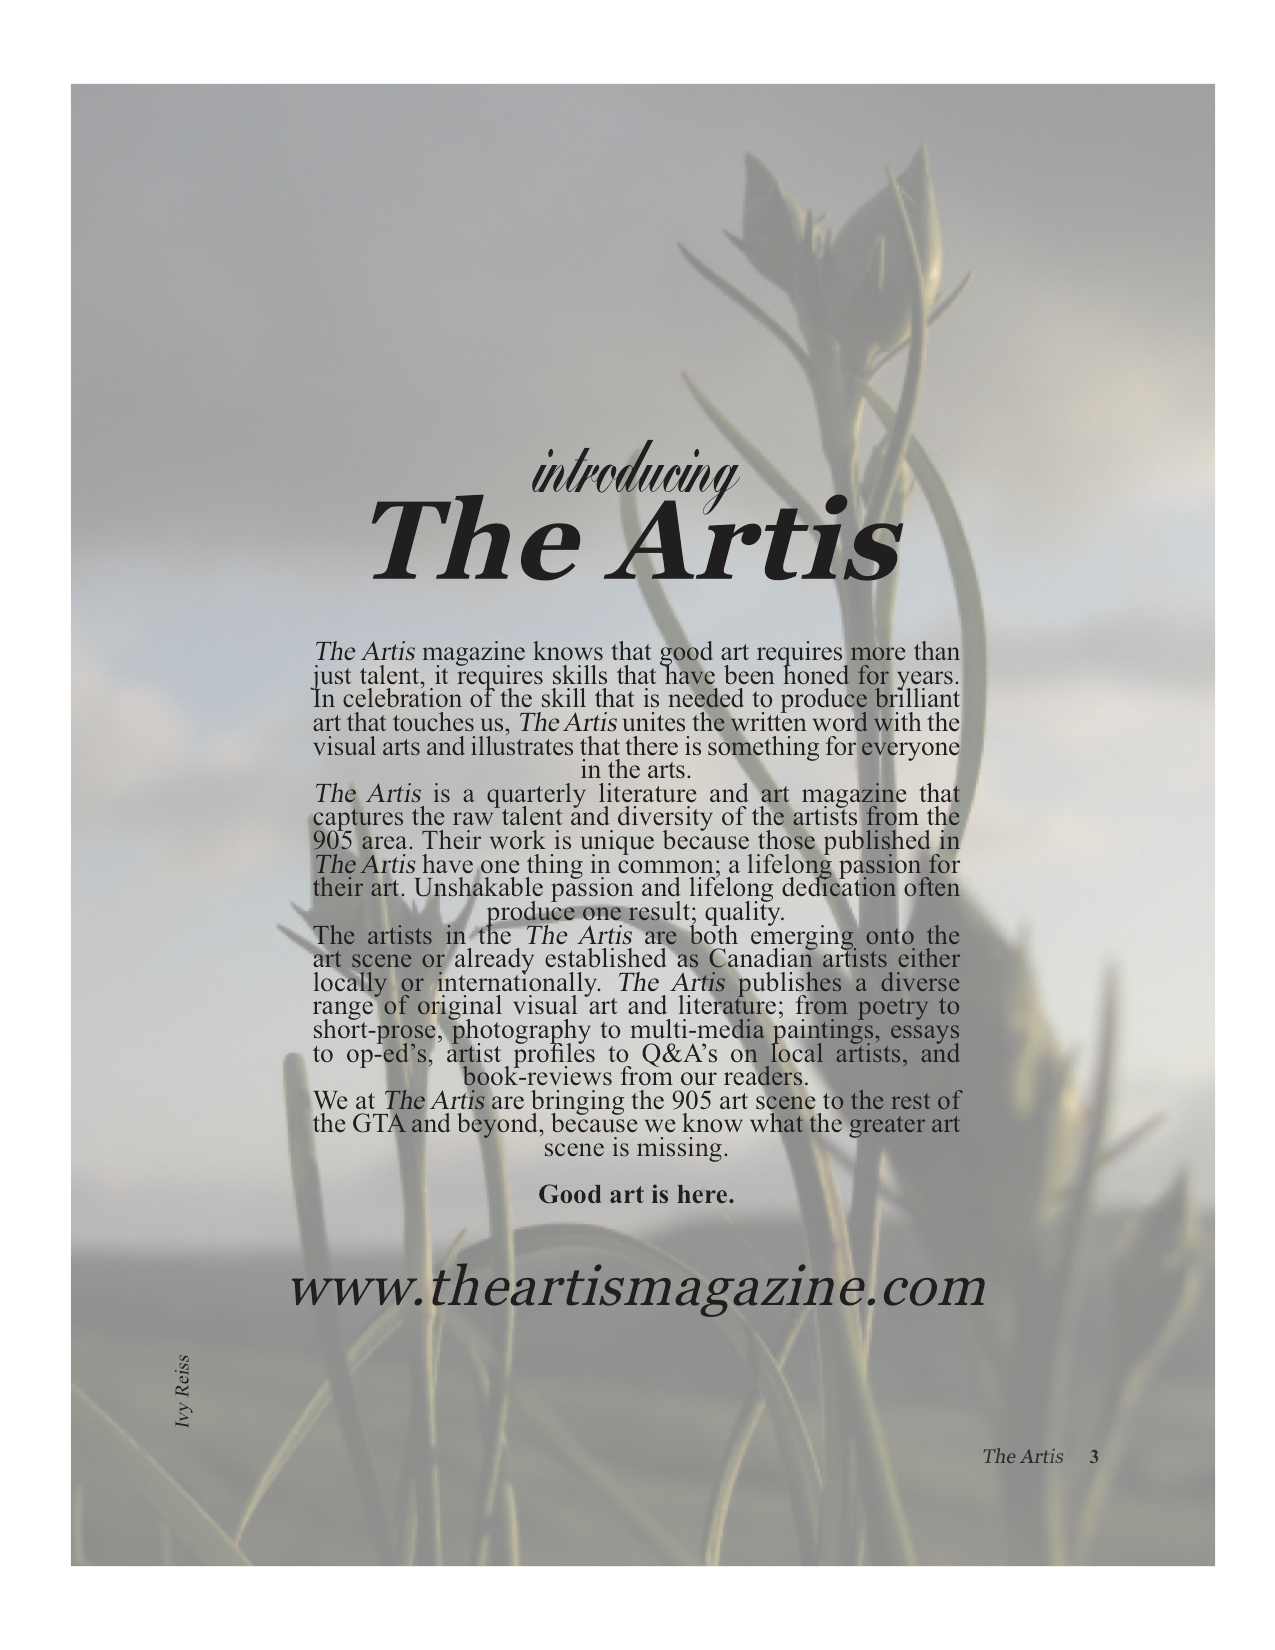 Artis 1 page 3 for site.jpg